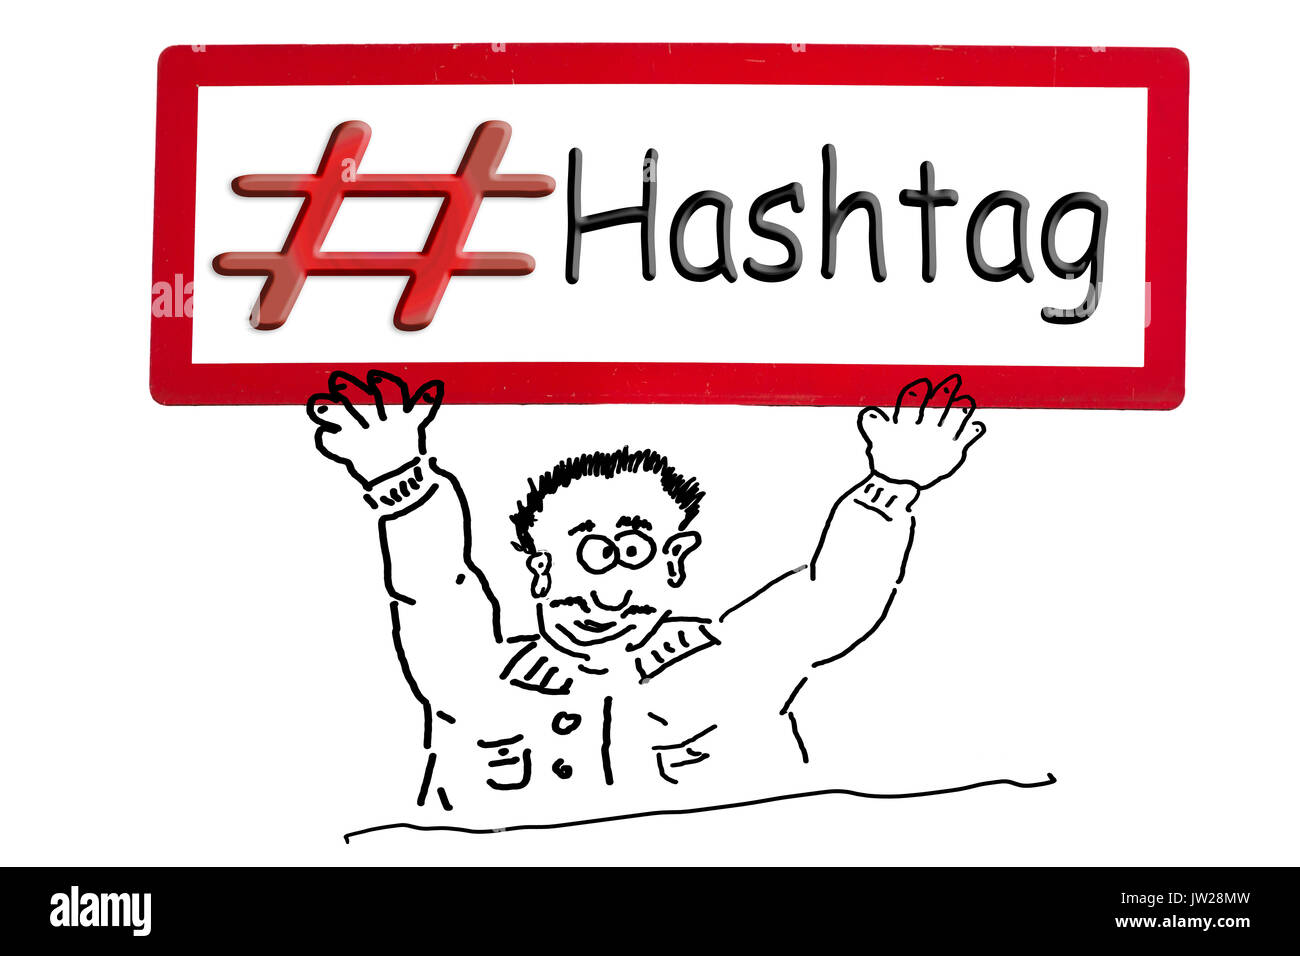 Hand drawing of an advertising figure, comic figure or stroke drawing. Cartoon character holding a sign above his head with inscription # hashtag. - Stock Image